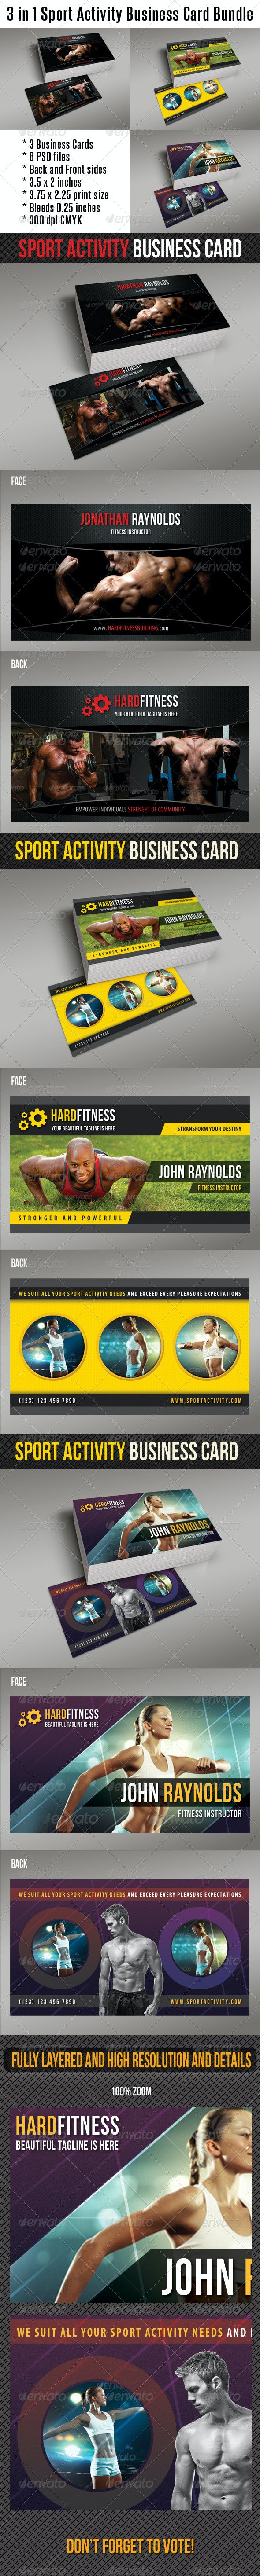 3 in 1 Sport Activity Business Card Bundle 01 - Creative Business Cards